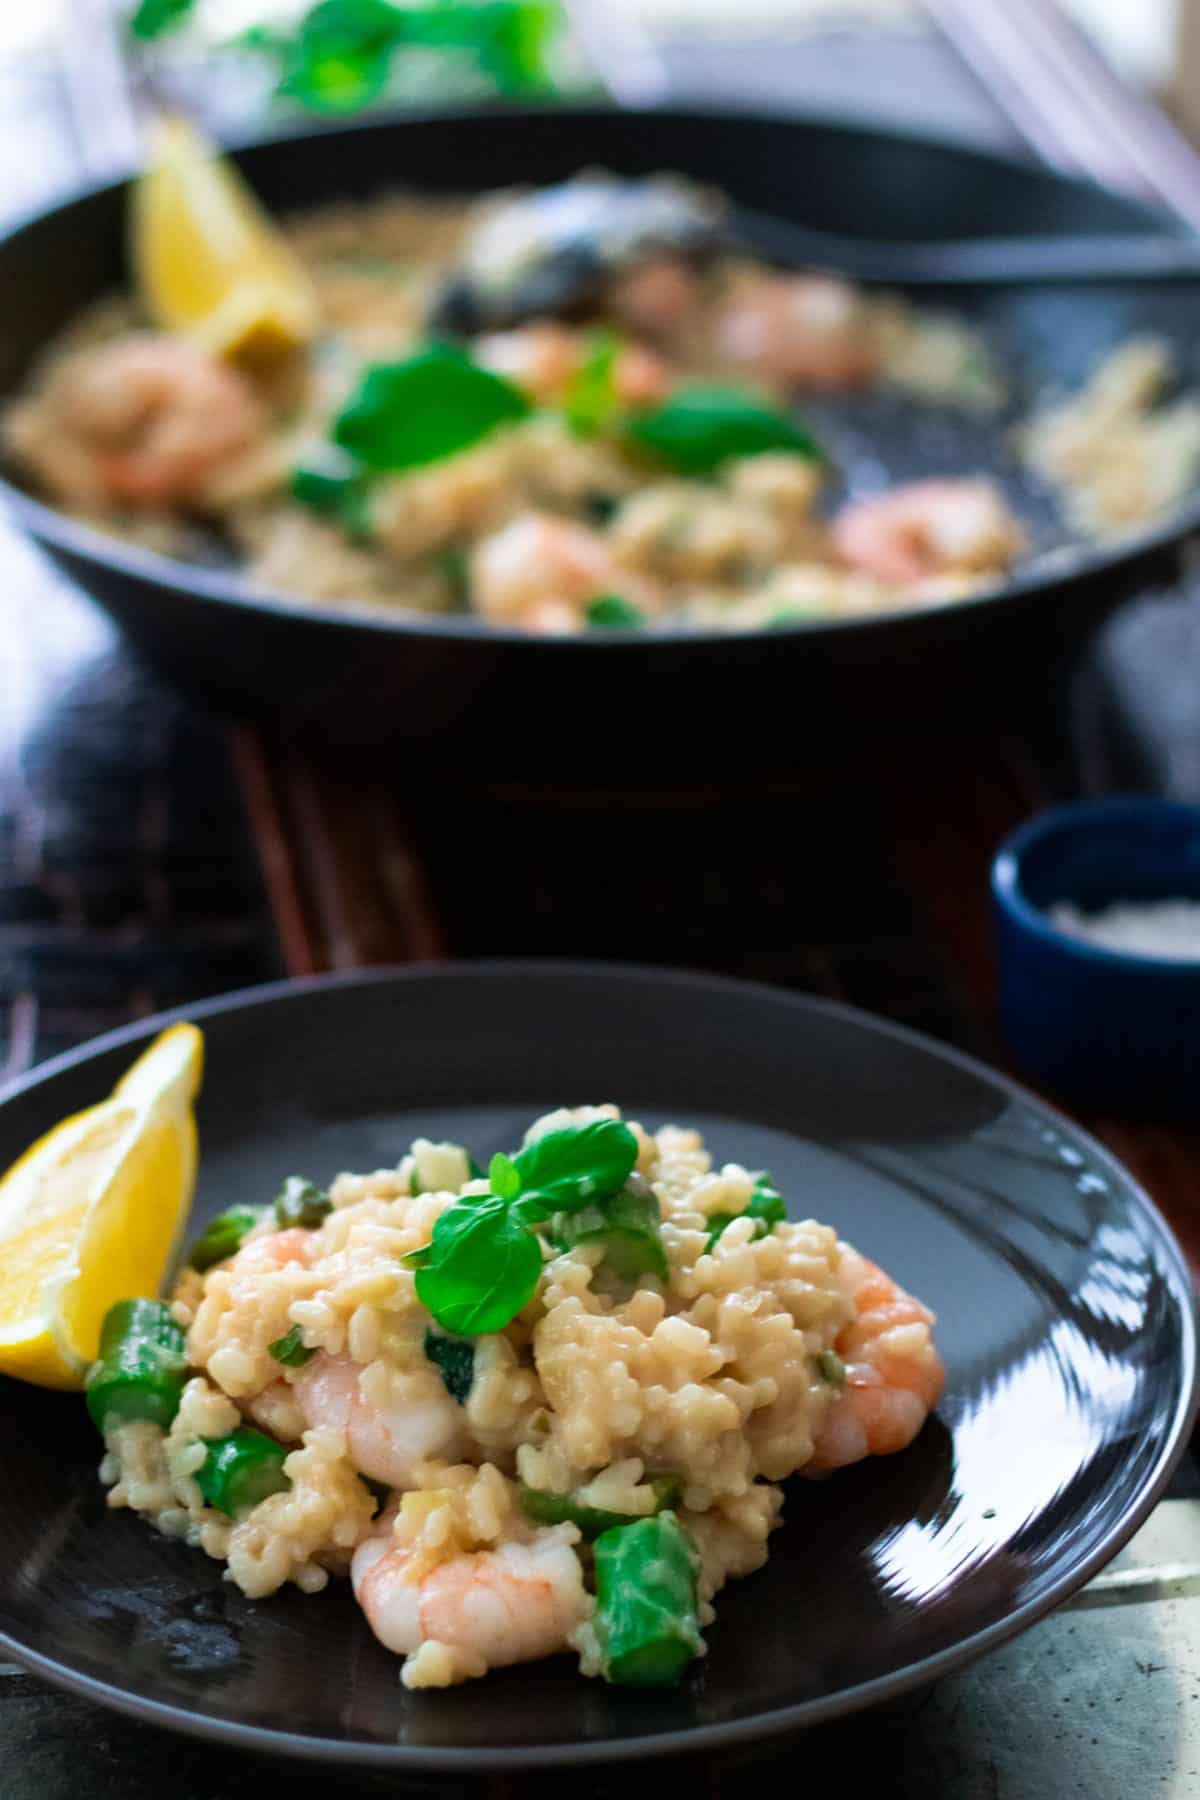 a plate with shrimp risotto in front of a a pan of shrimp risotto